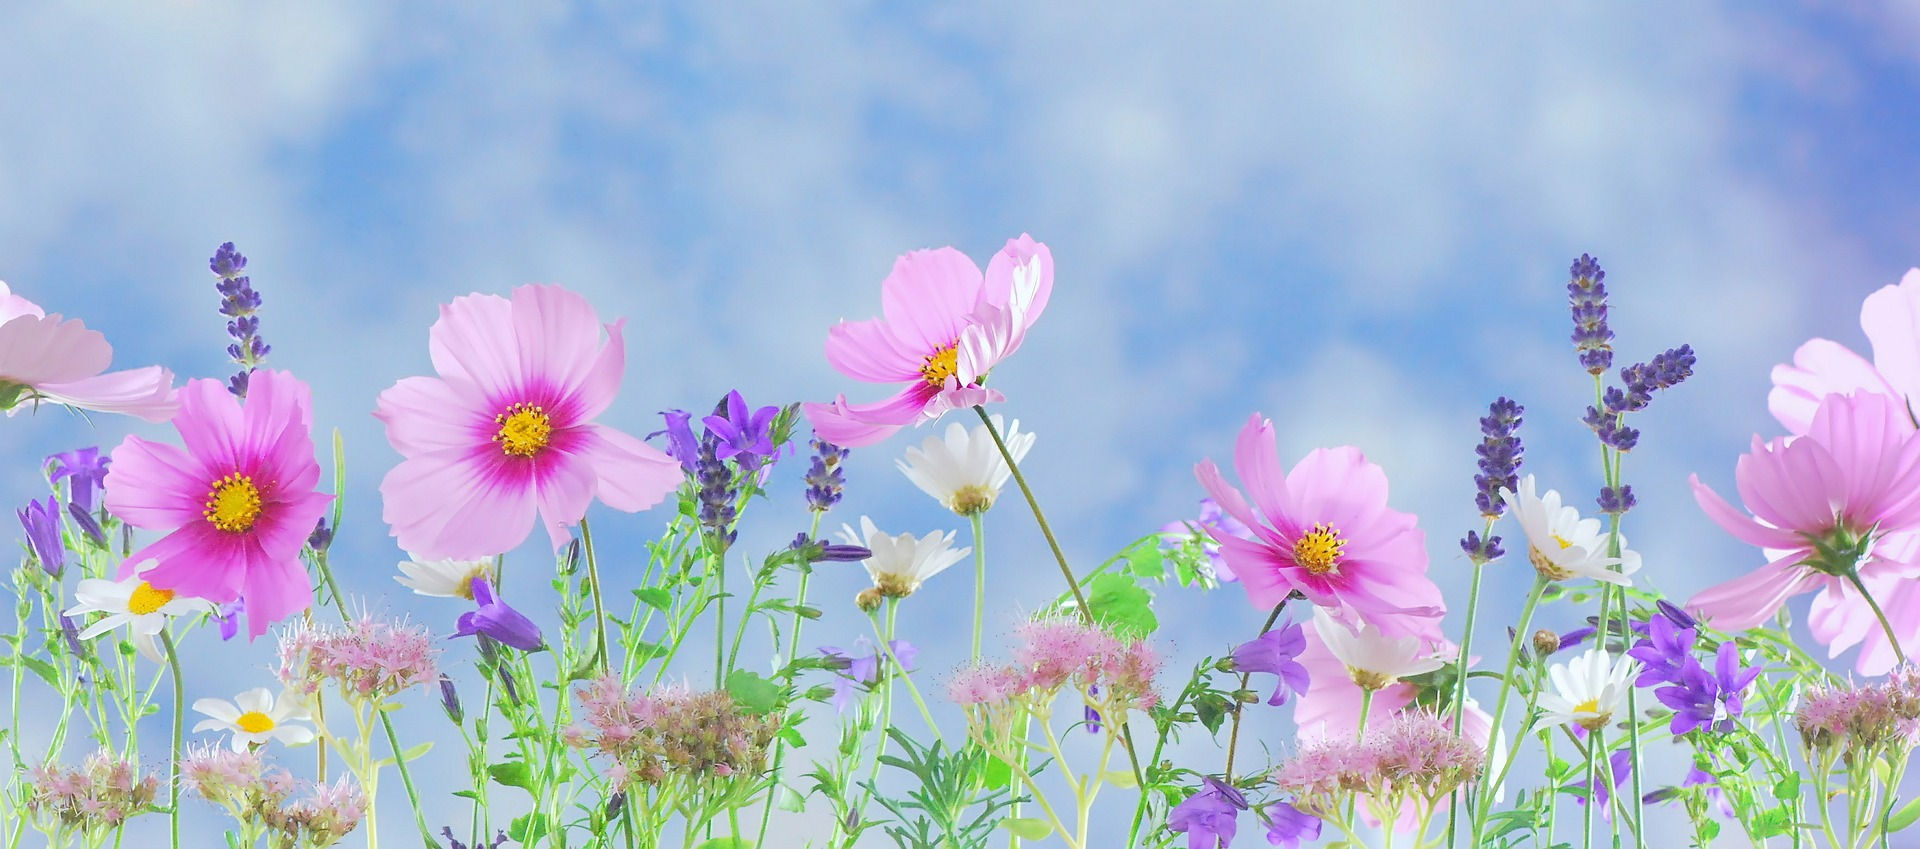 spring flowers  New Spring Flowers wallpaper download  Flowers 1920x849